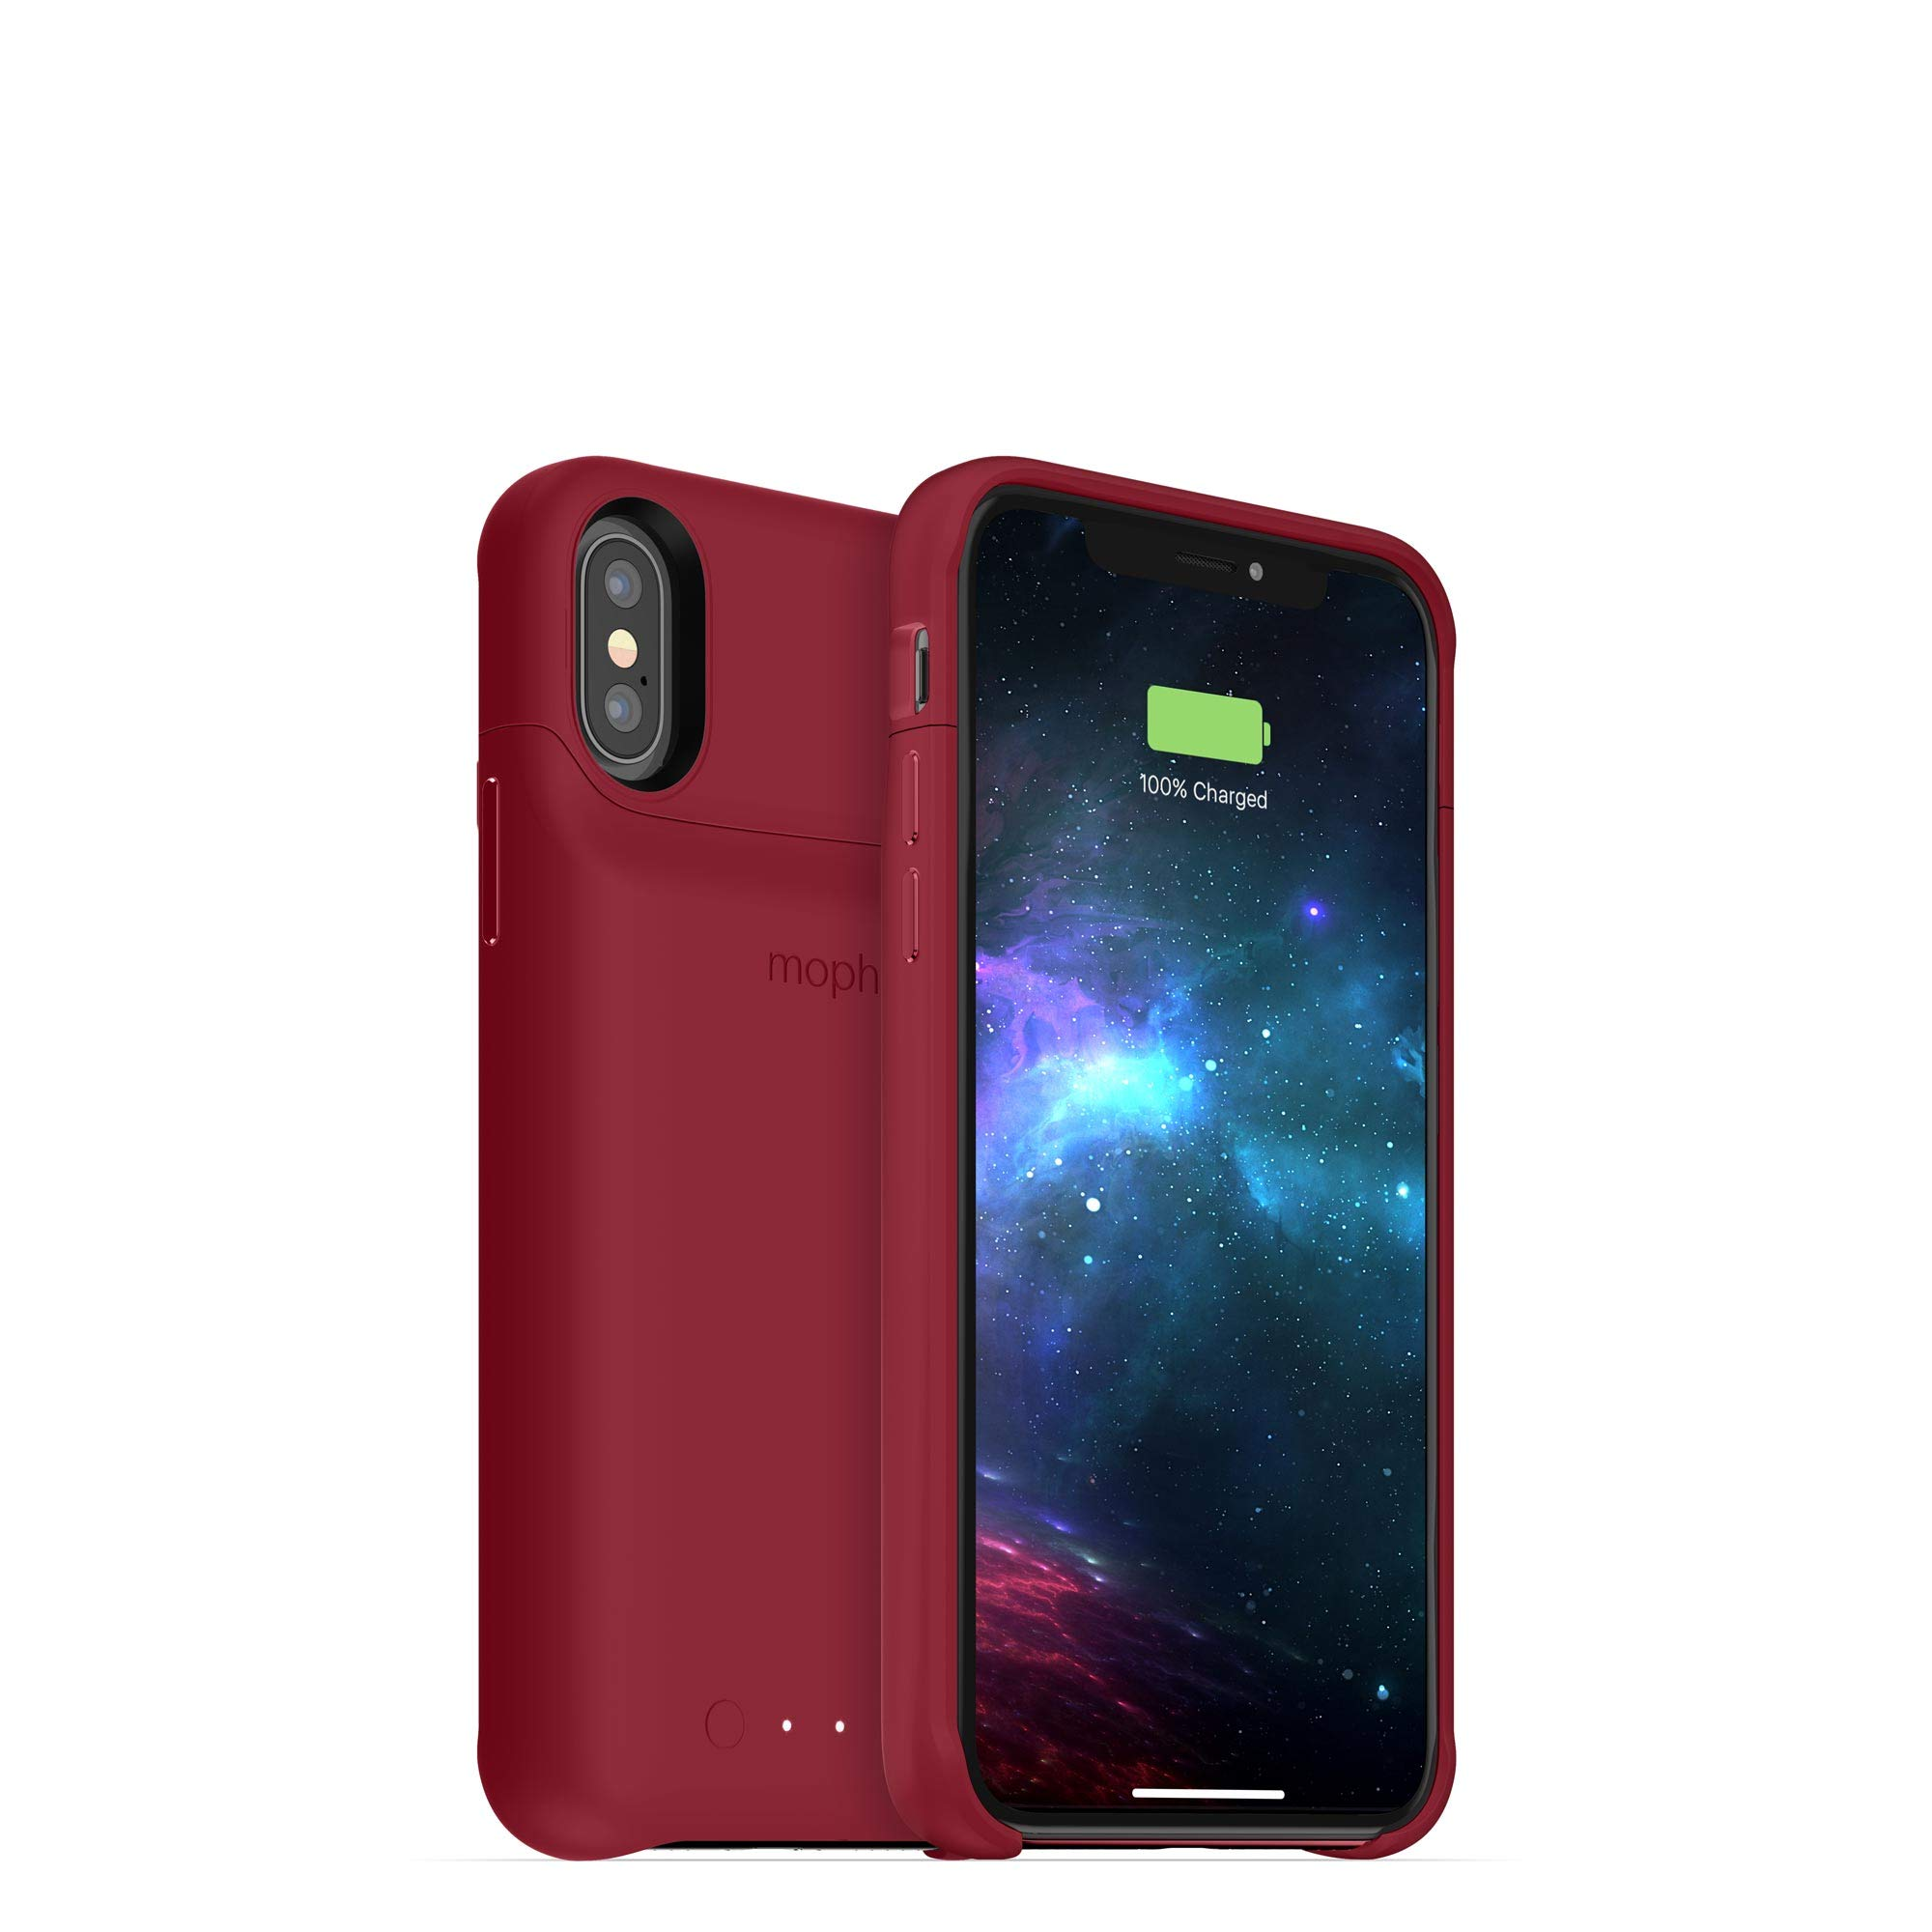 mophie Juice Pack Access - Ultra-Slim Wireless Battery Case - Made for Apple iPhone Xs/iPhone X (2,000mAh) - Dark Red by mophie